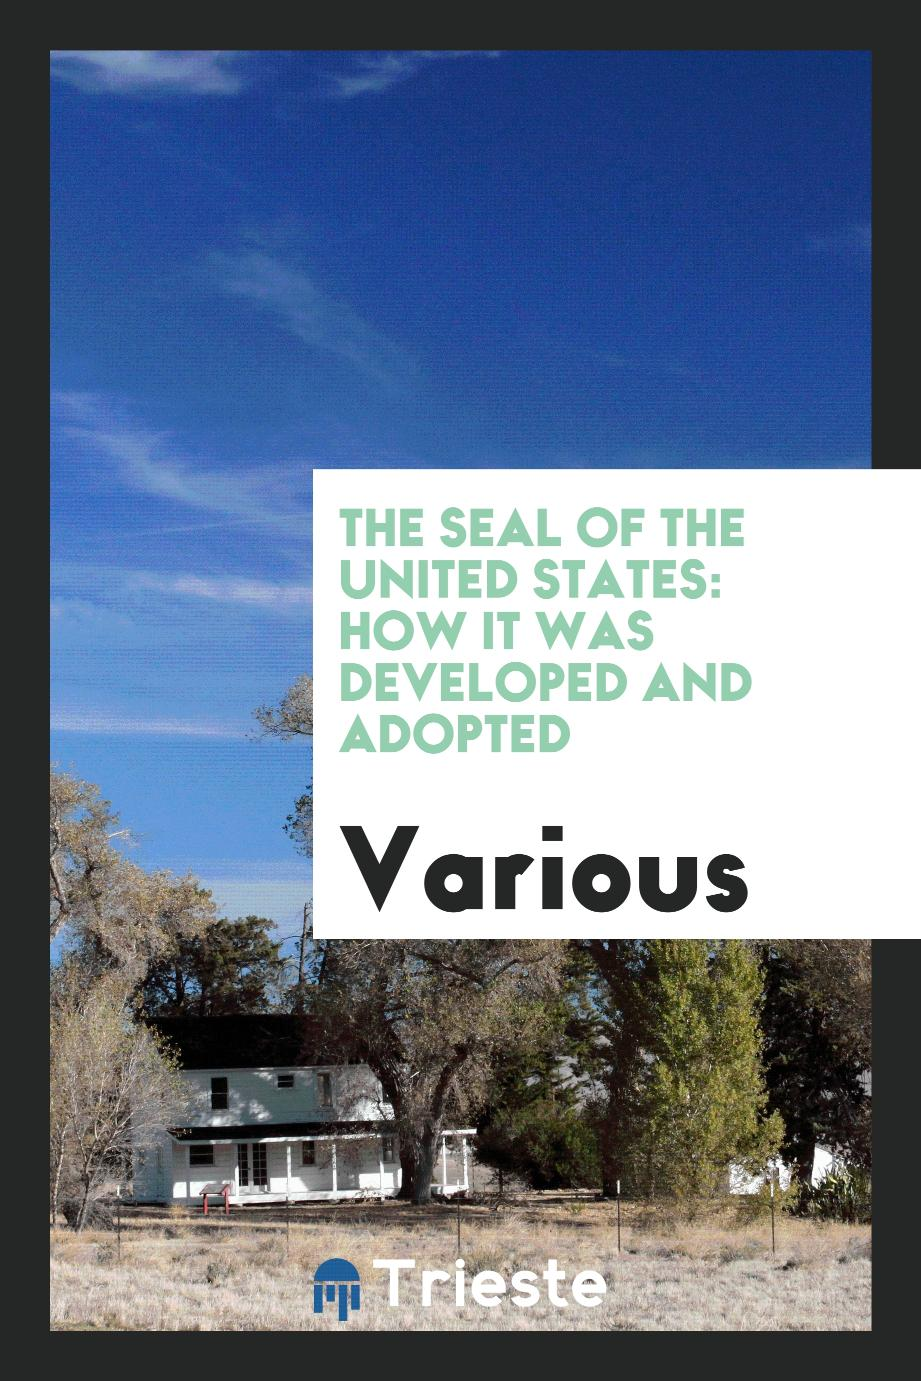 The Seal of the United States: How it was Developed and Adopted